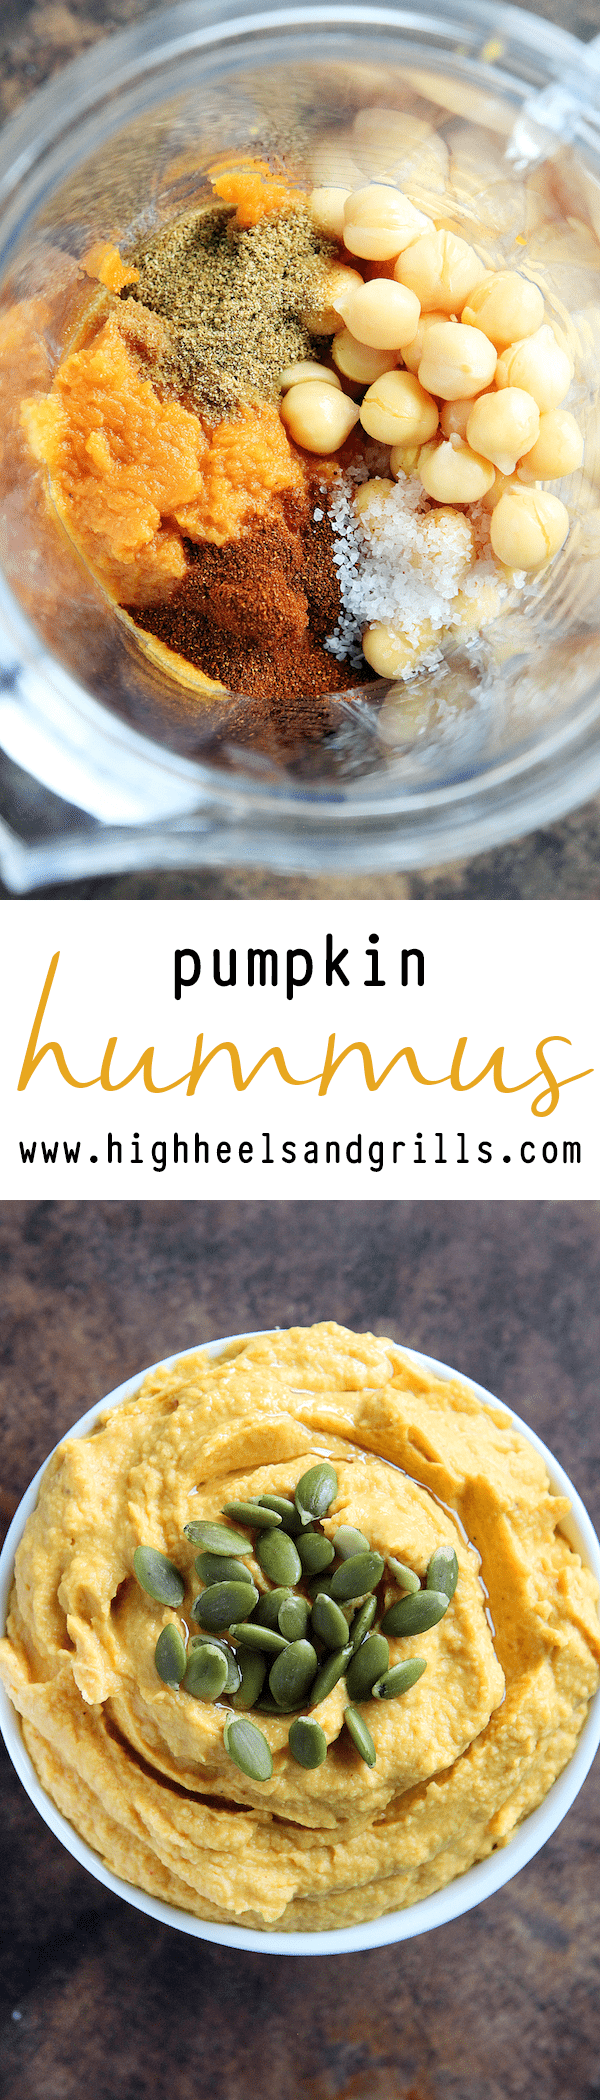 Pumpkin Hummus Collage